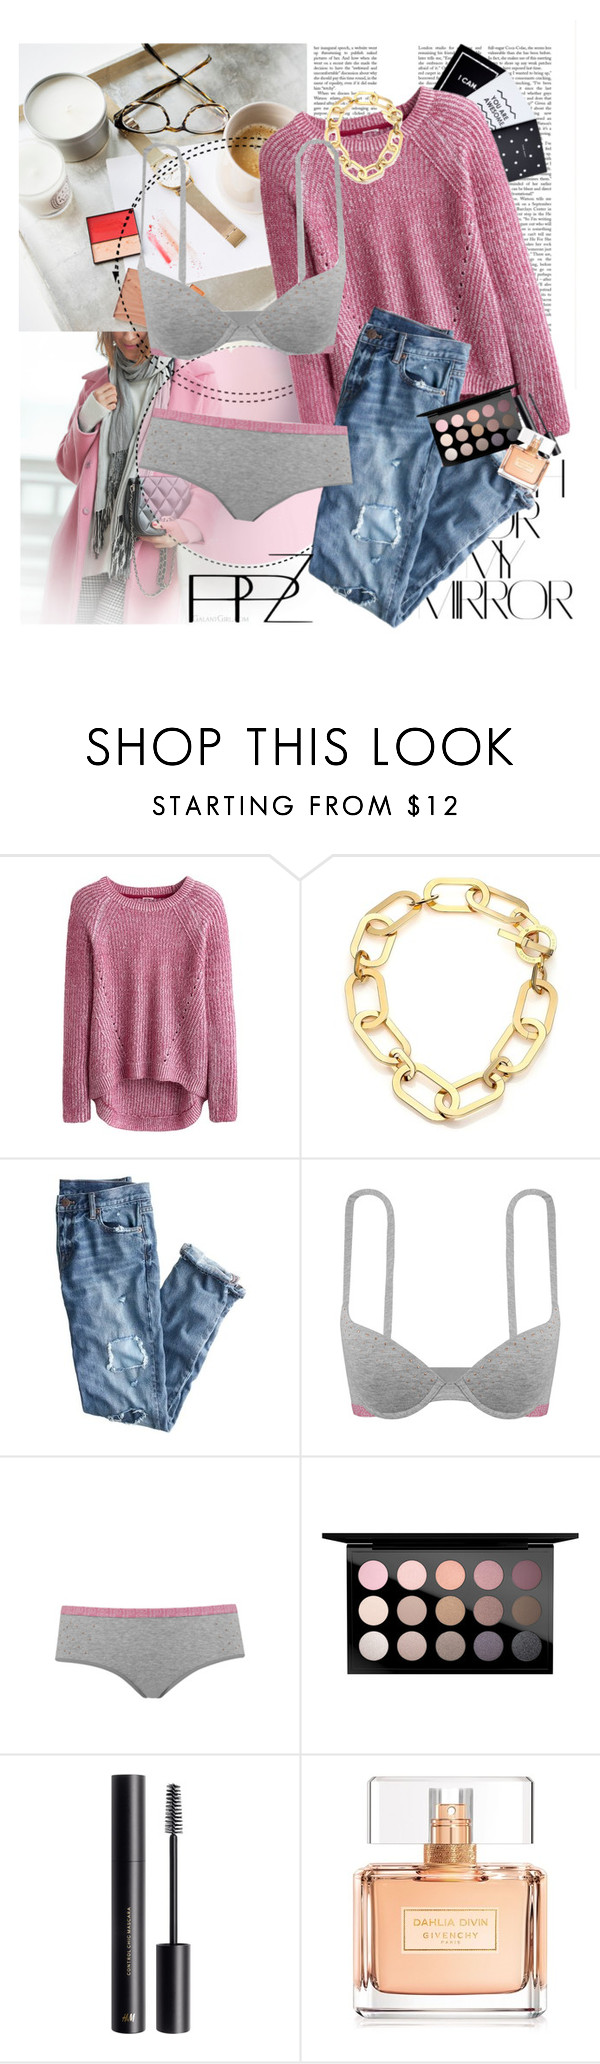 """PPZ Lingerie 10."" by nensy ❤ liked on Polyvore featuring Rika, Michael Kors, J.Crew, MAC Cosmetics, H&M, Givenchy, lingerie and PPZ"